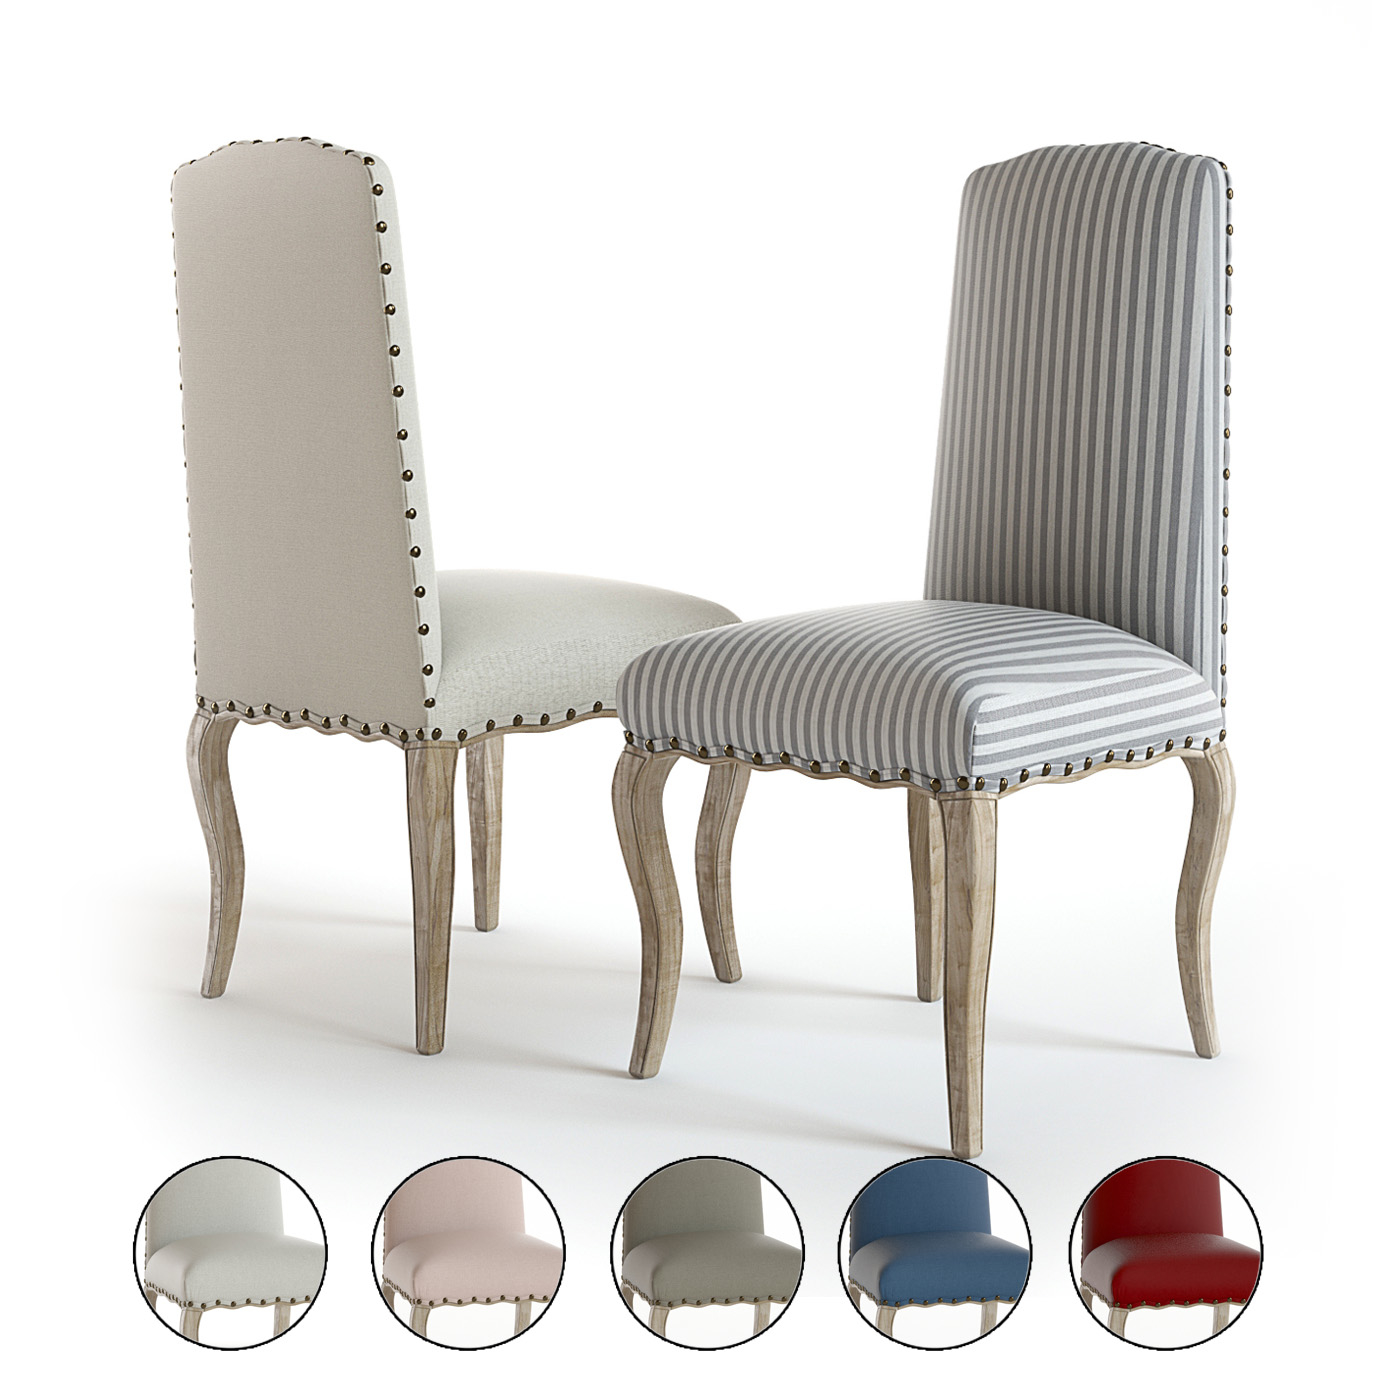 Pottery Barn - Calais dining chairs